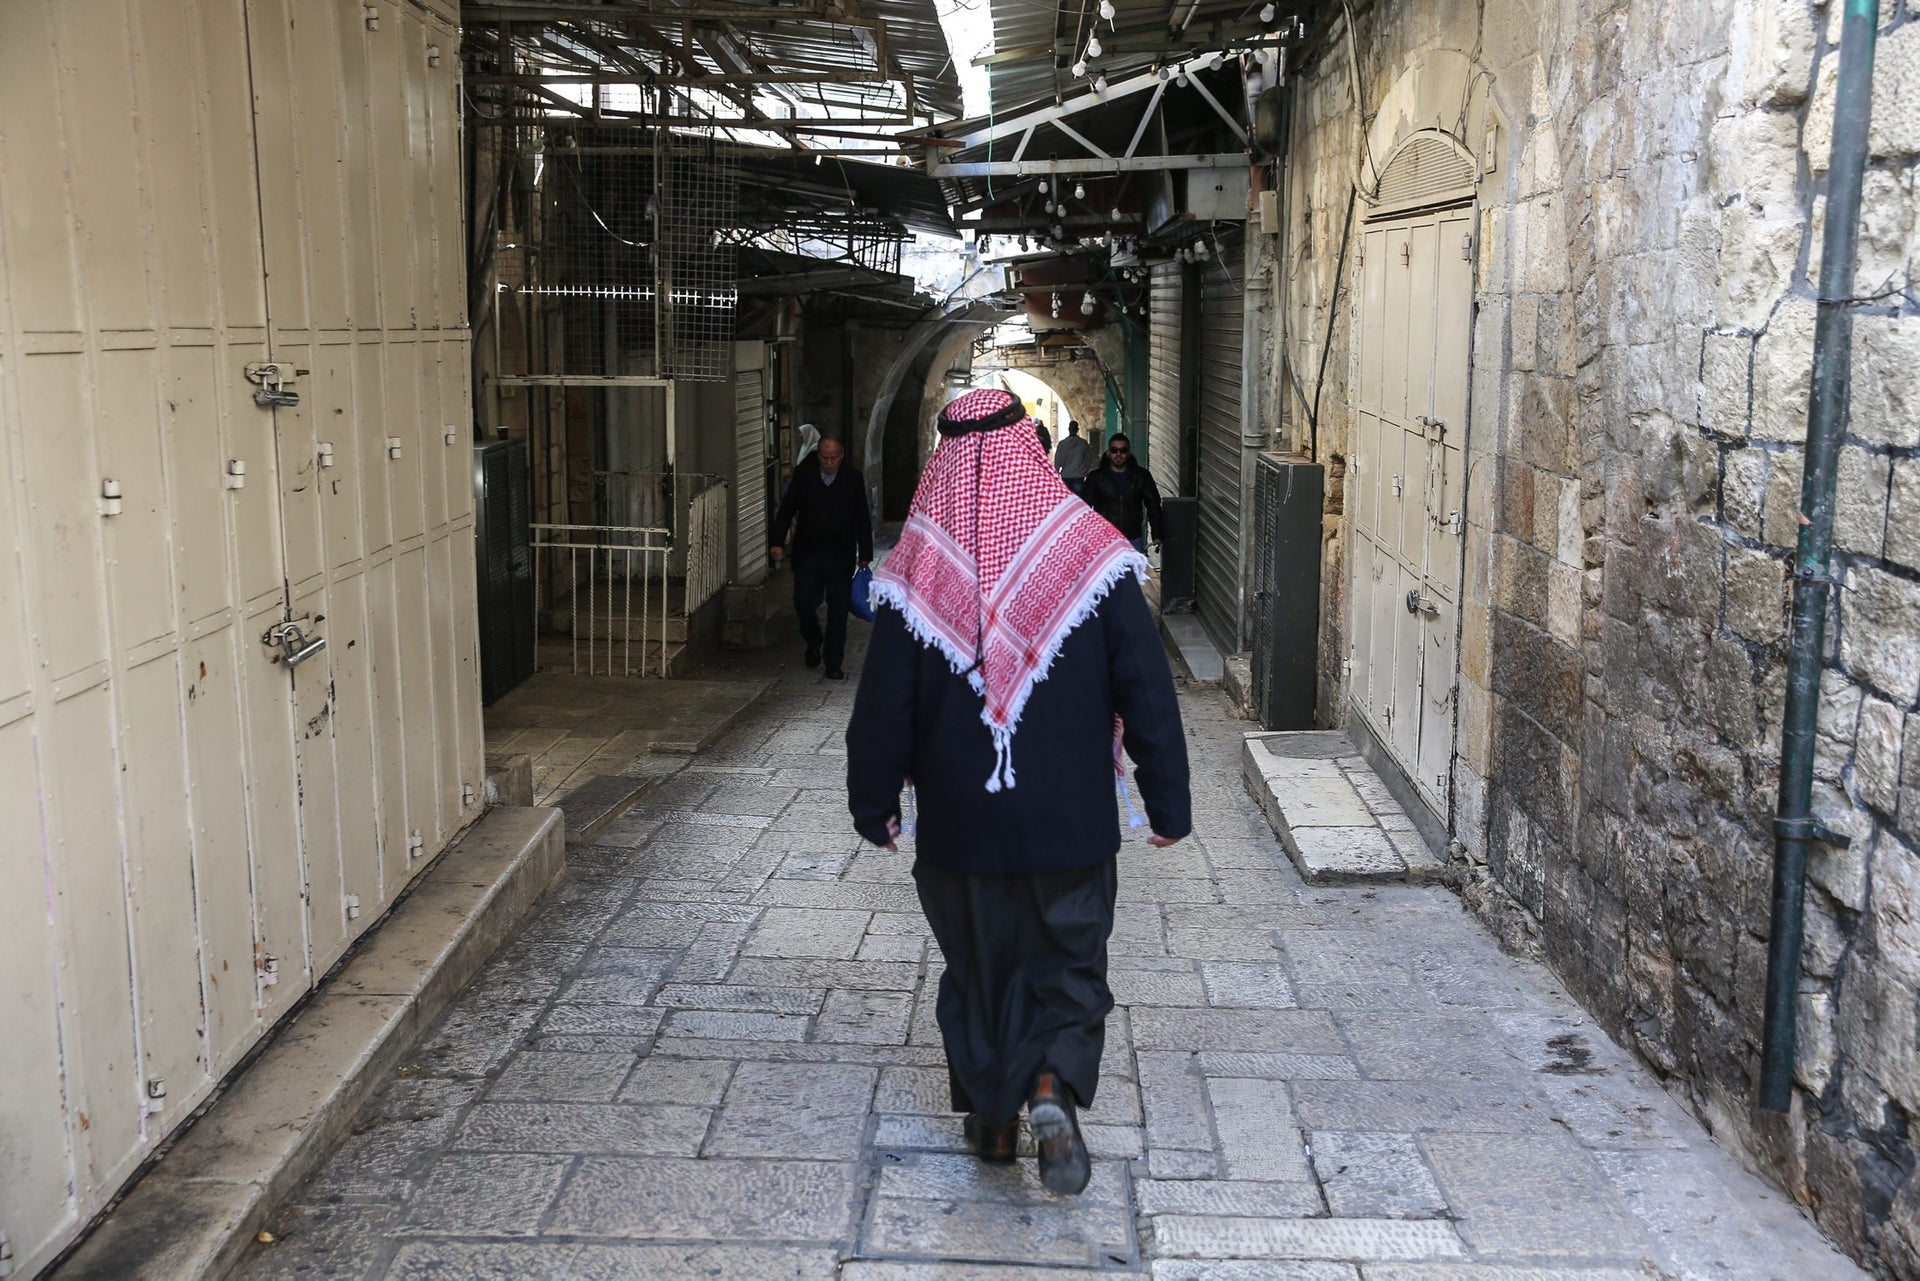 An Arab man walking through the Old City of Jerusalem after Palestinians called a strike in protest at U.S. President Donald Trump's recognition of Jerusalem as the Israeli capital, December 7, 2017.